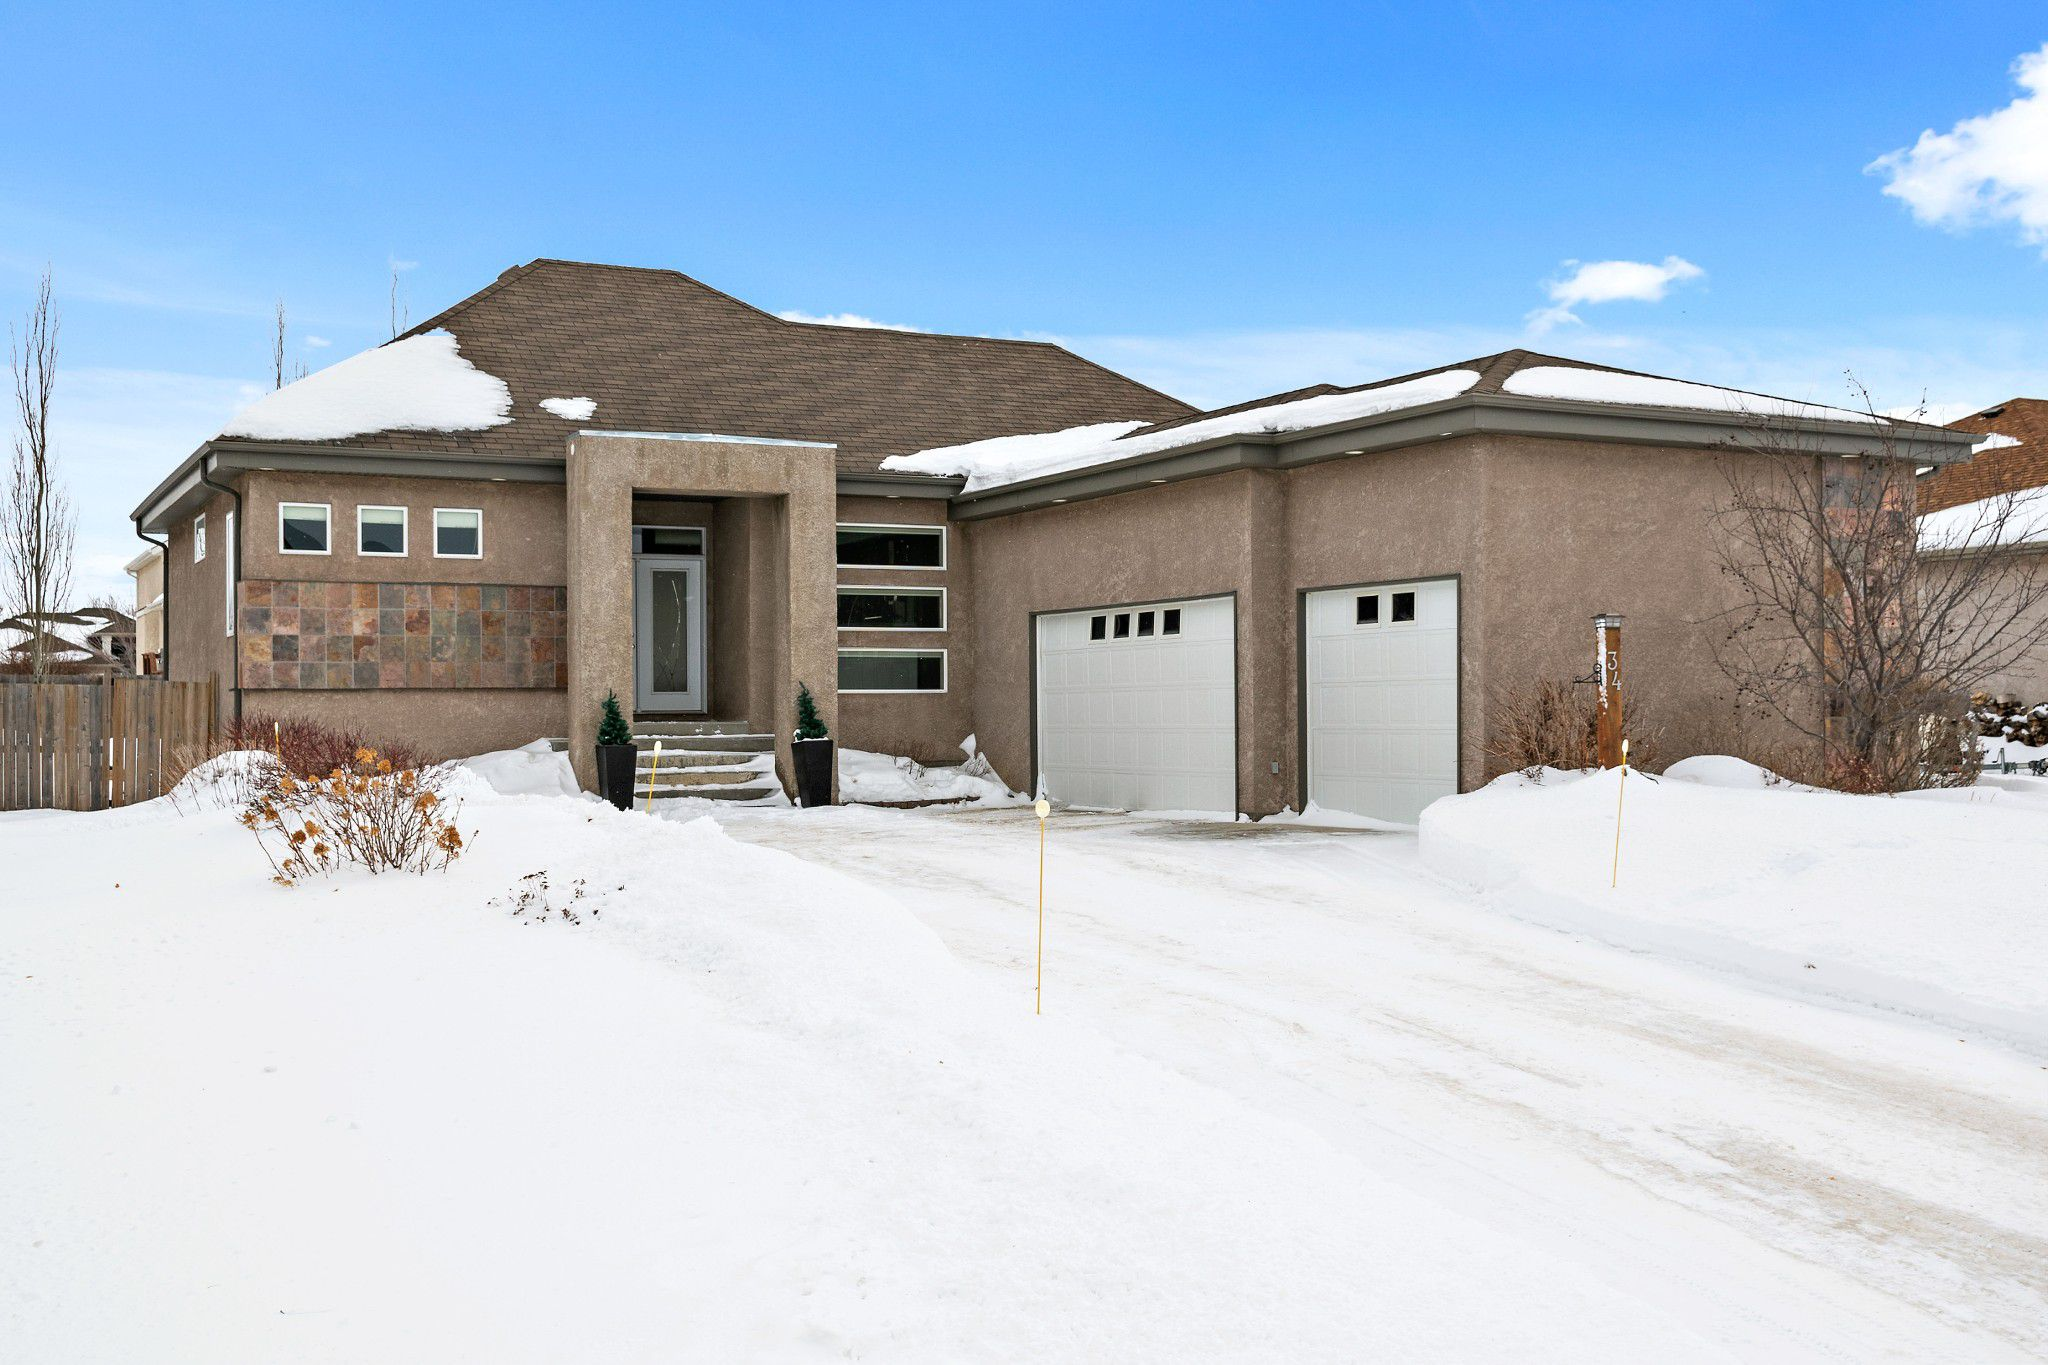 Immaculate custom built 1593 sf home in the heart of Oakbank. Great curb appeal and beautifully landscaped 85 x 140 lot with large boulder rocks, trees and shrubs. Gorgeous open concept home which boast 10' ceilings and a large 9' granite countertop slab,